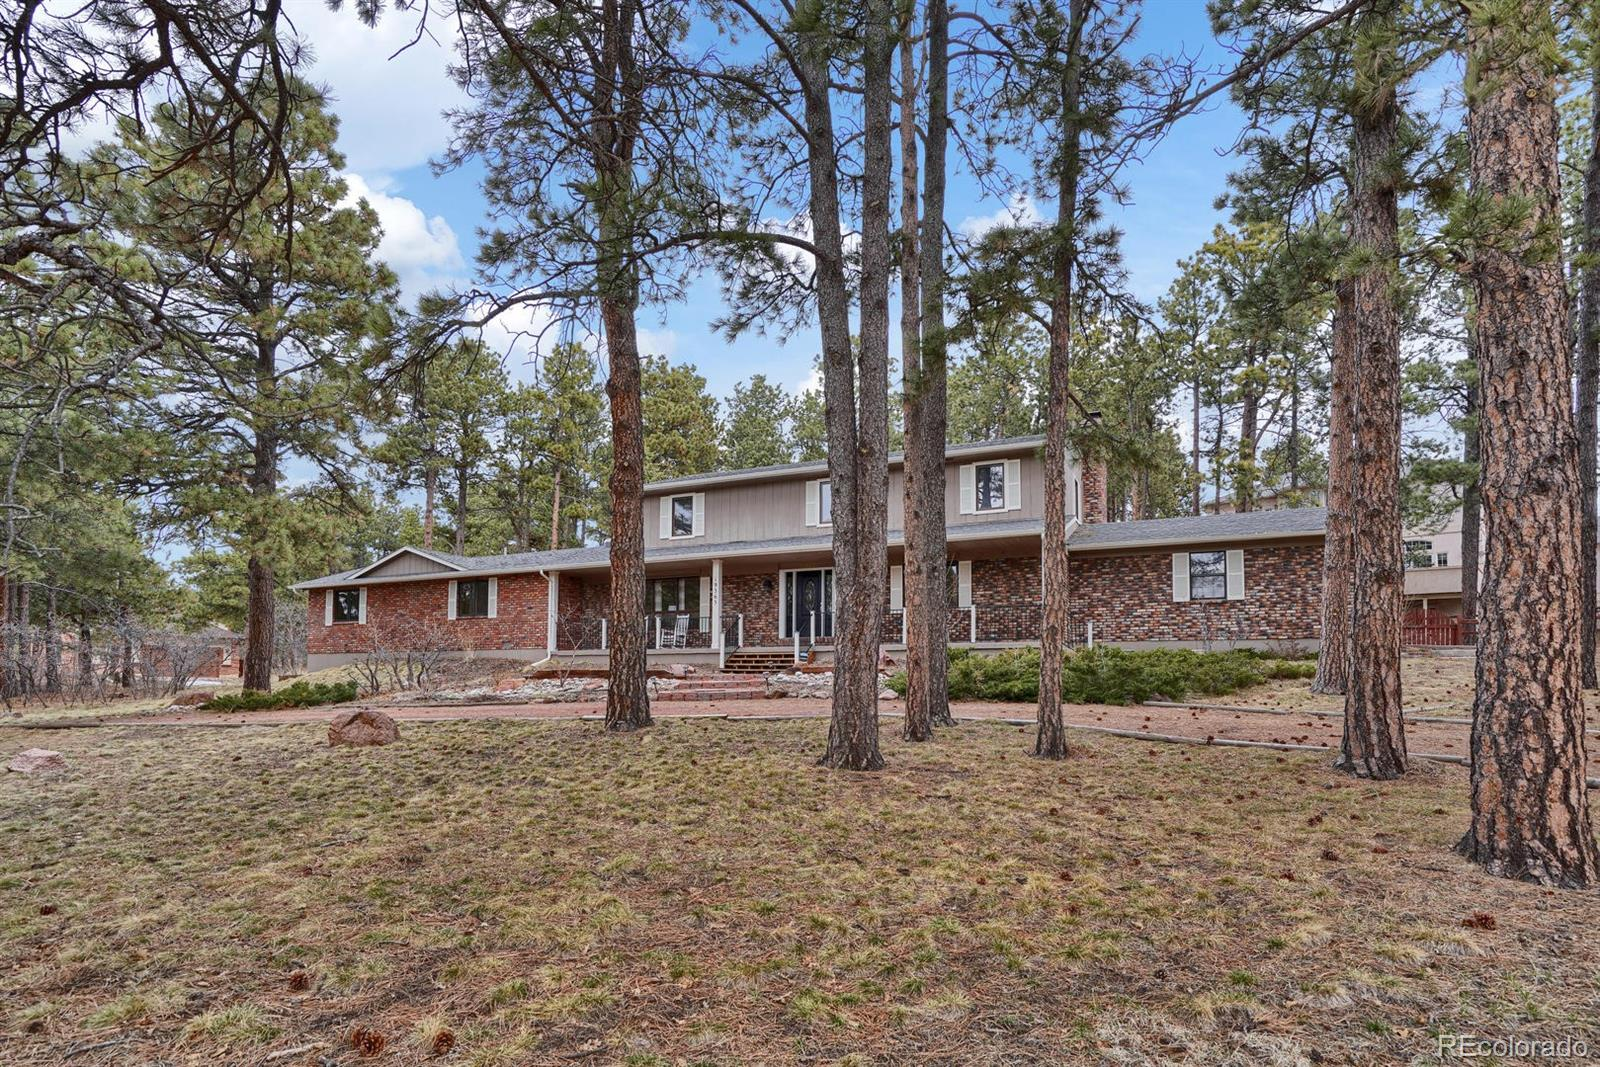 MLS# 2861241 - 1 - 19365 Doewood Drive, Monument, CO 80132